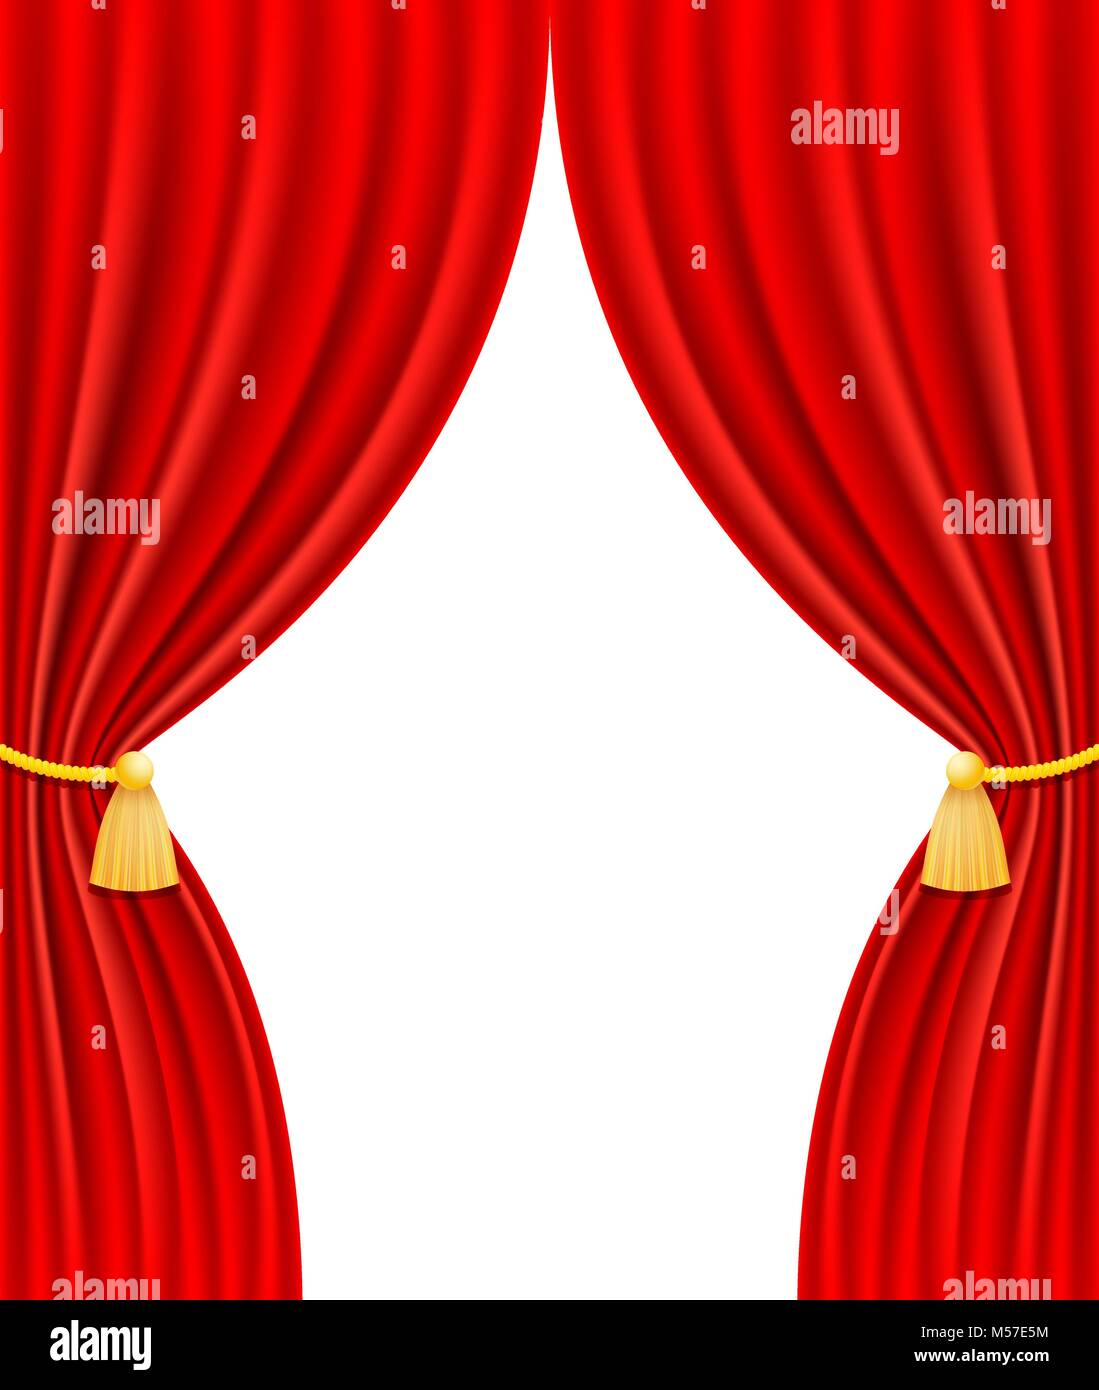 red theatrical curtain vector illustration isolated on white background - Stock Vector